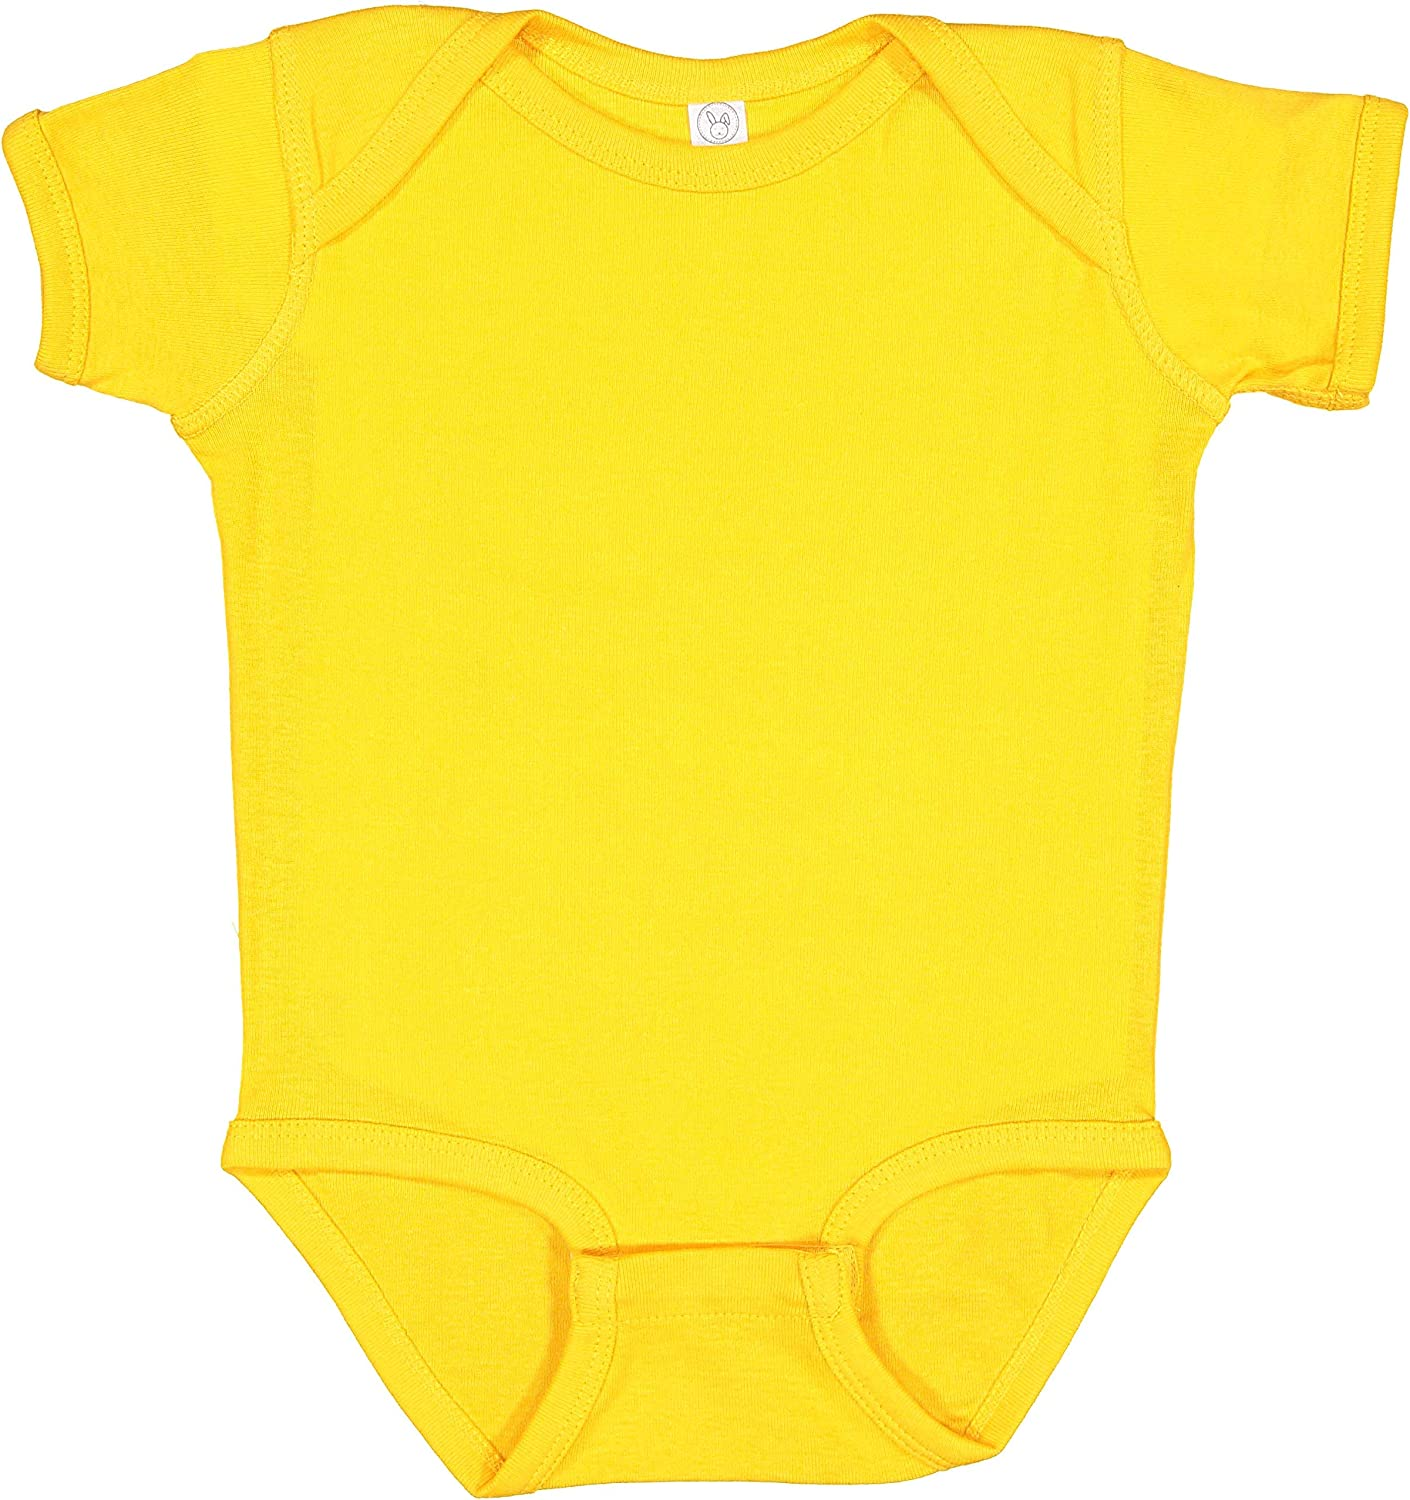 RABBIT SKINS, Baby Soft Short-Sleeve Bodysuit